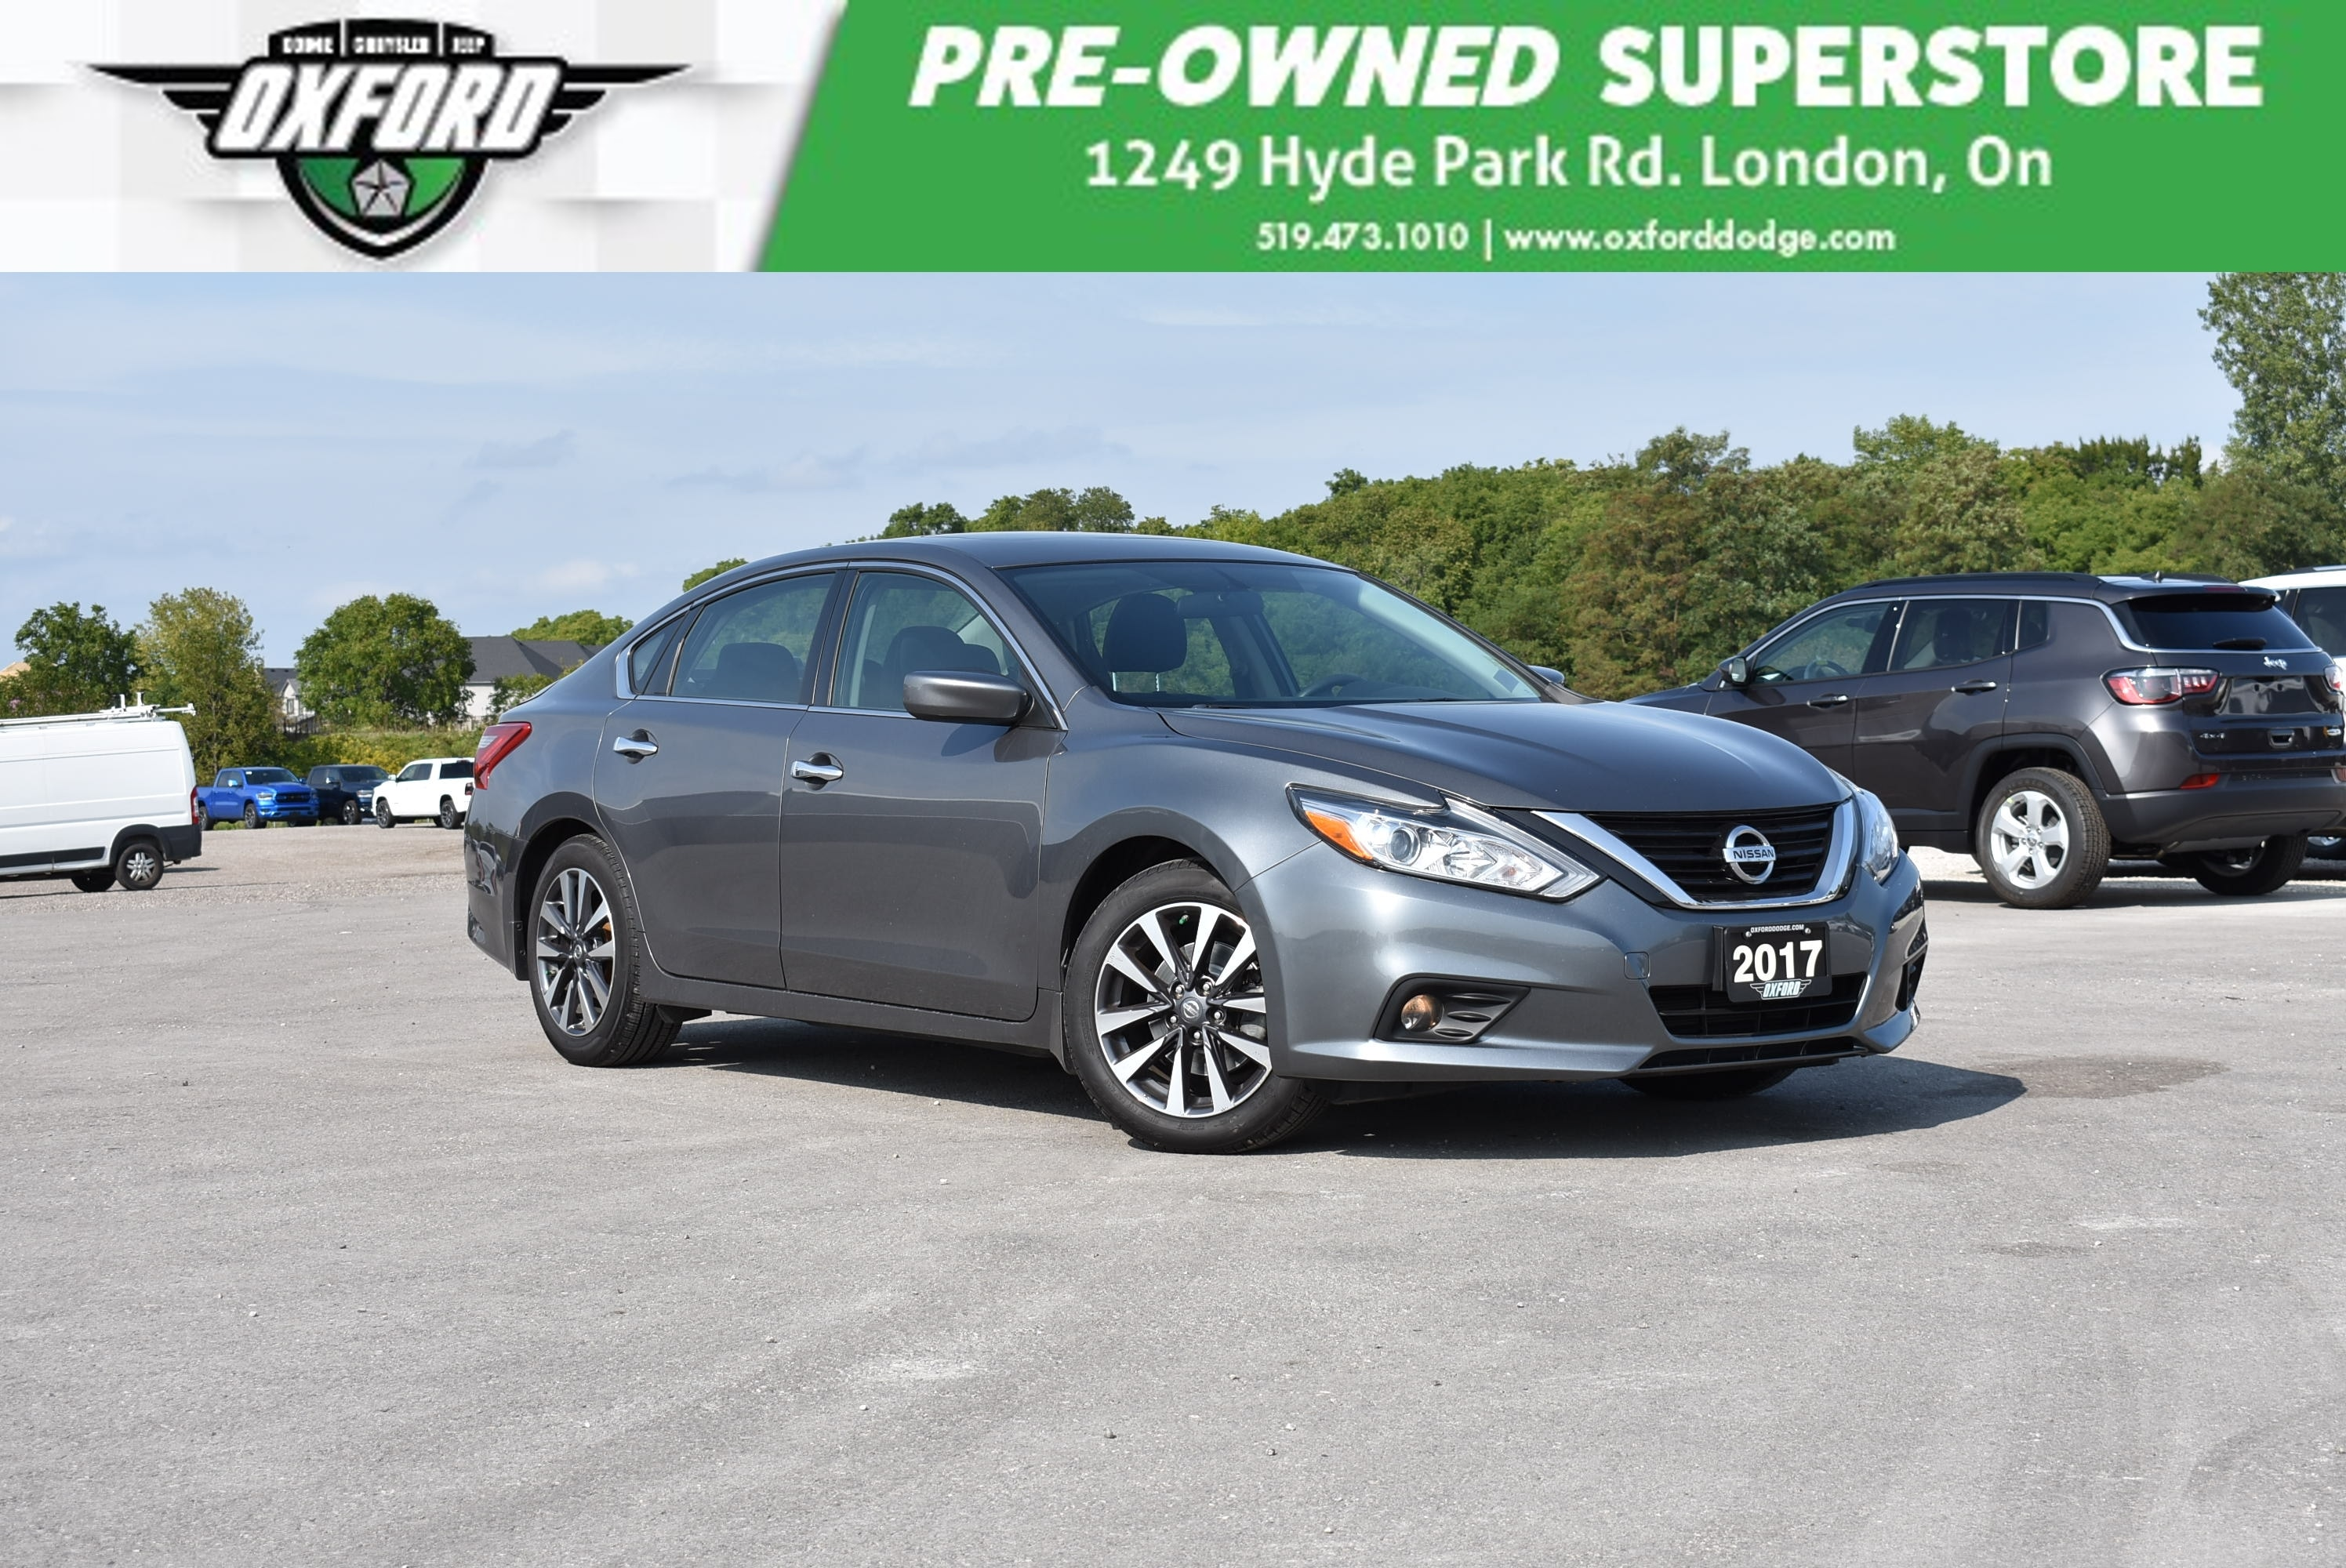 used 2017 Nissan Altima car, priced at $16,988